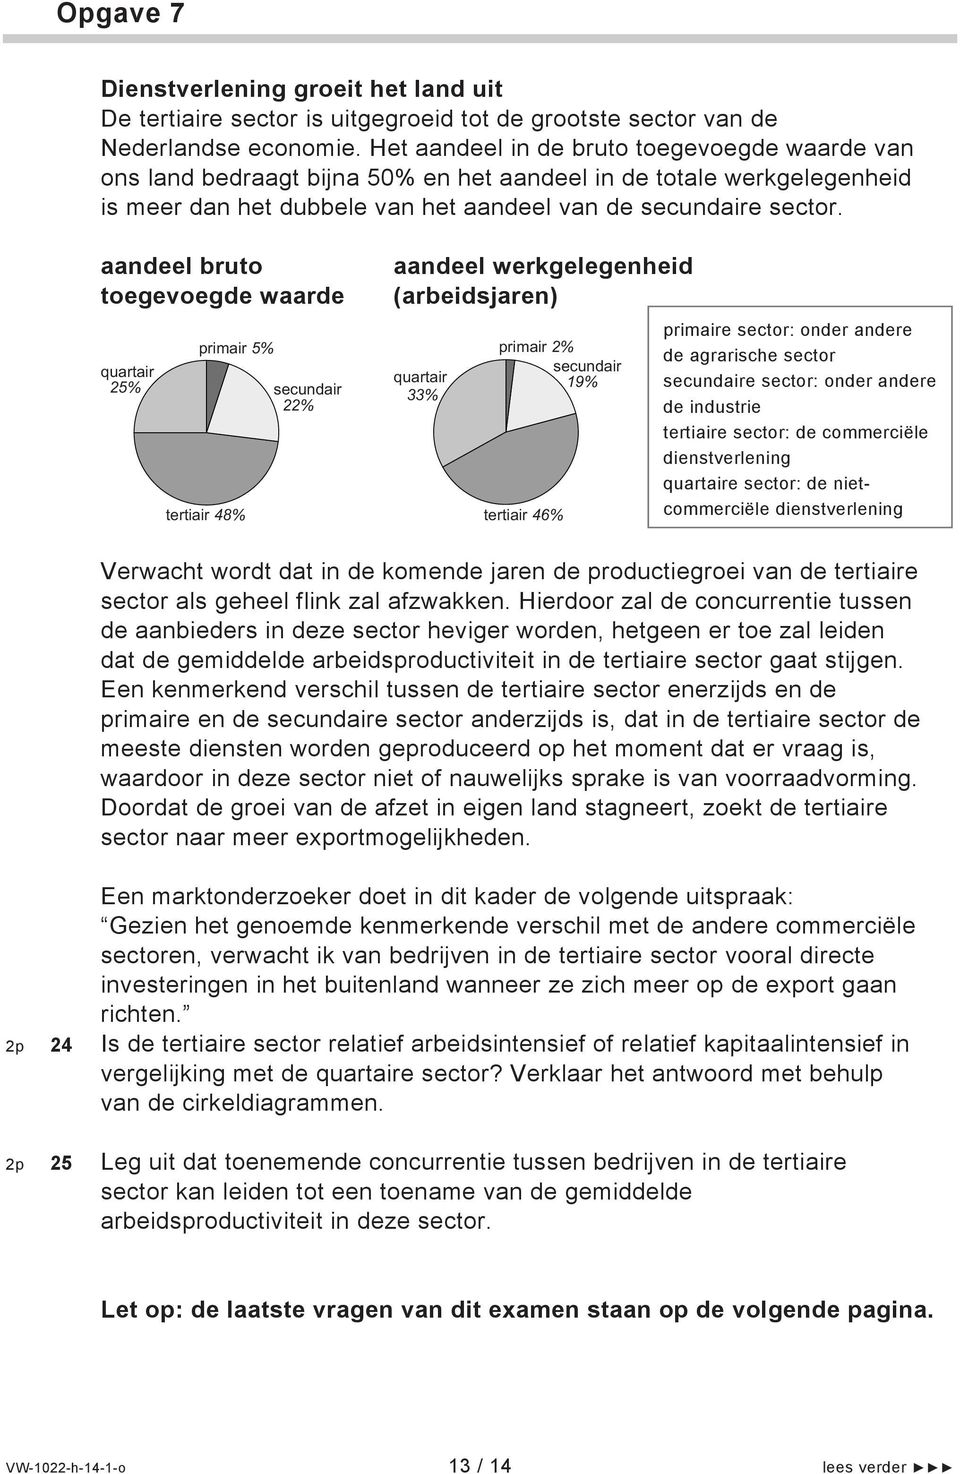 aandeel bruto toegevoegde waarde quartair 25% primair 5% tertiair 48% secundair 22% aandeel werkgelegenheid (arbeidsjaren) quartair 33% primair 2% secundair 19% tertiair 46% primaire sector: onder